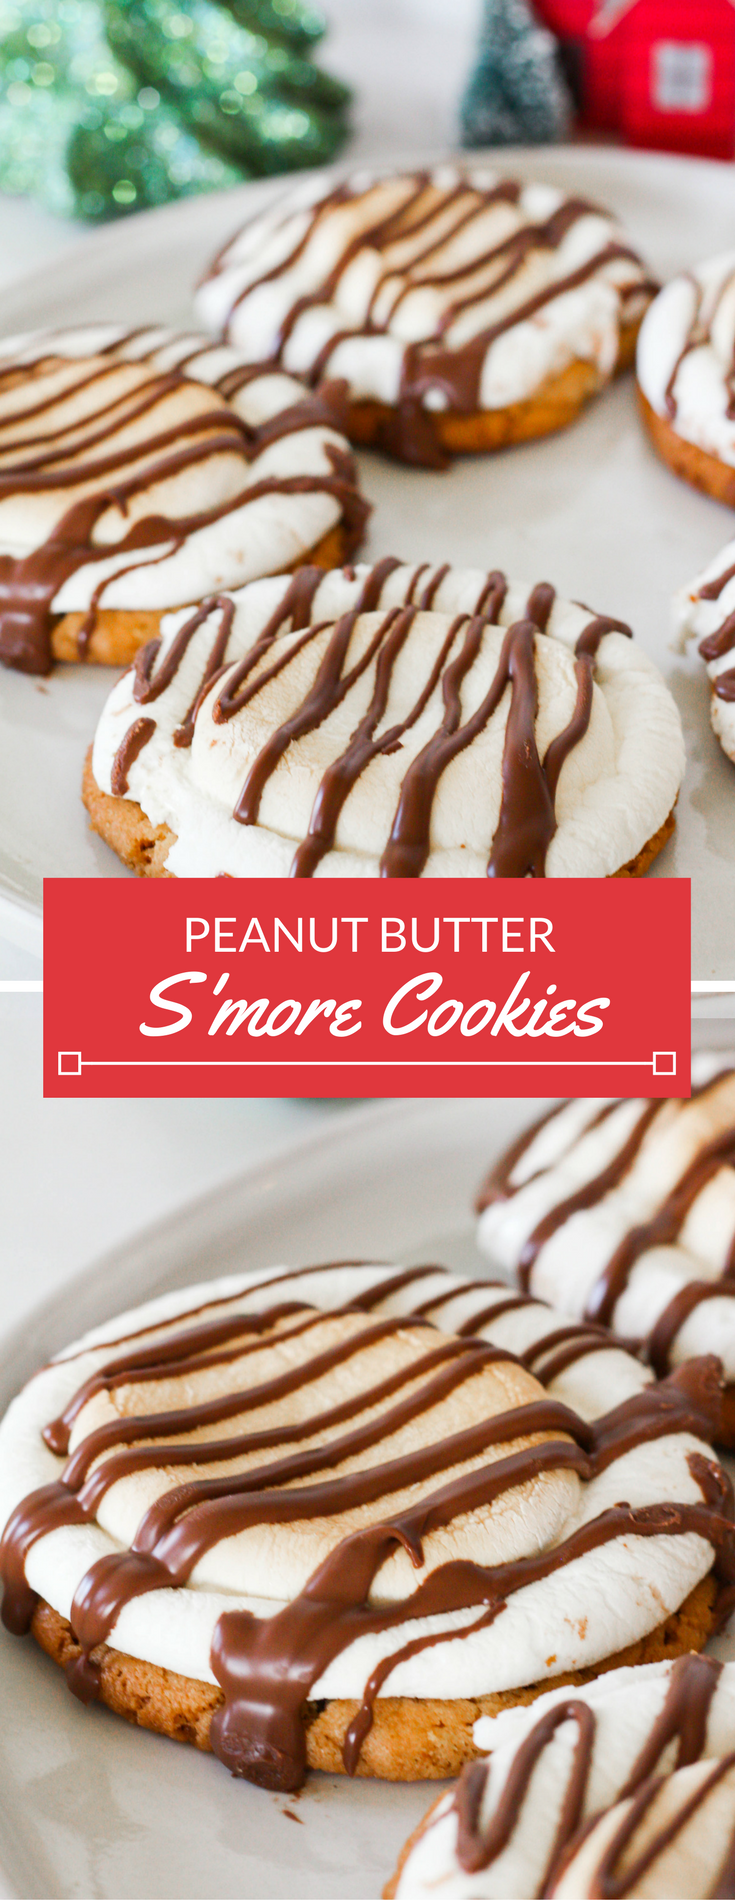 Chewy peanut butter s'more cookies, topped with a toasty, melted marshmallow and drizzled with sweet chocolate. For any chocolate and peanut butter fan out there, these peanut butter s'more cookies are sure to please.